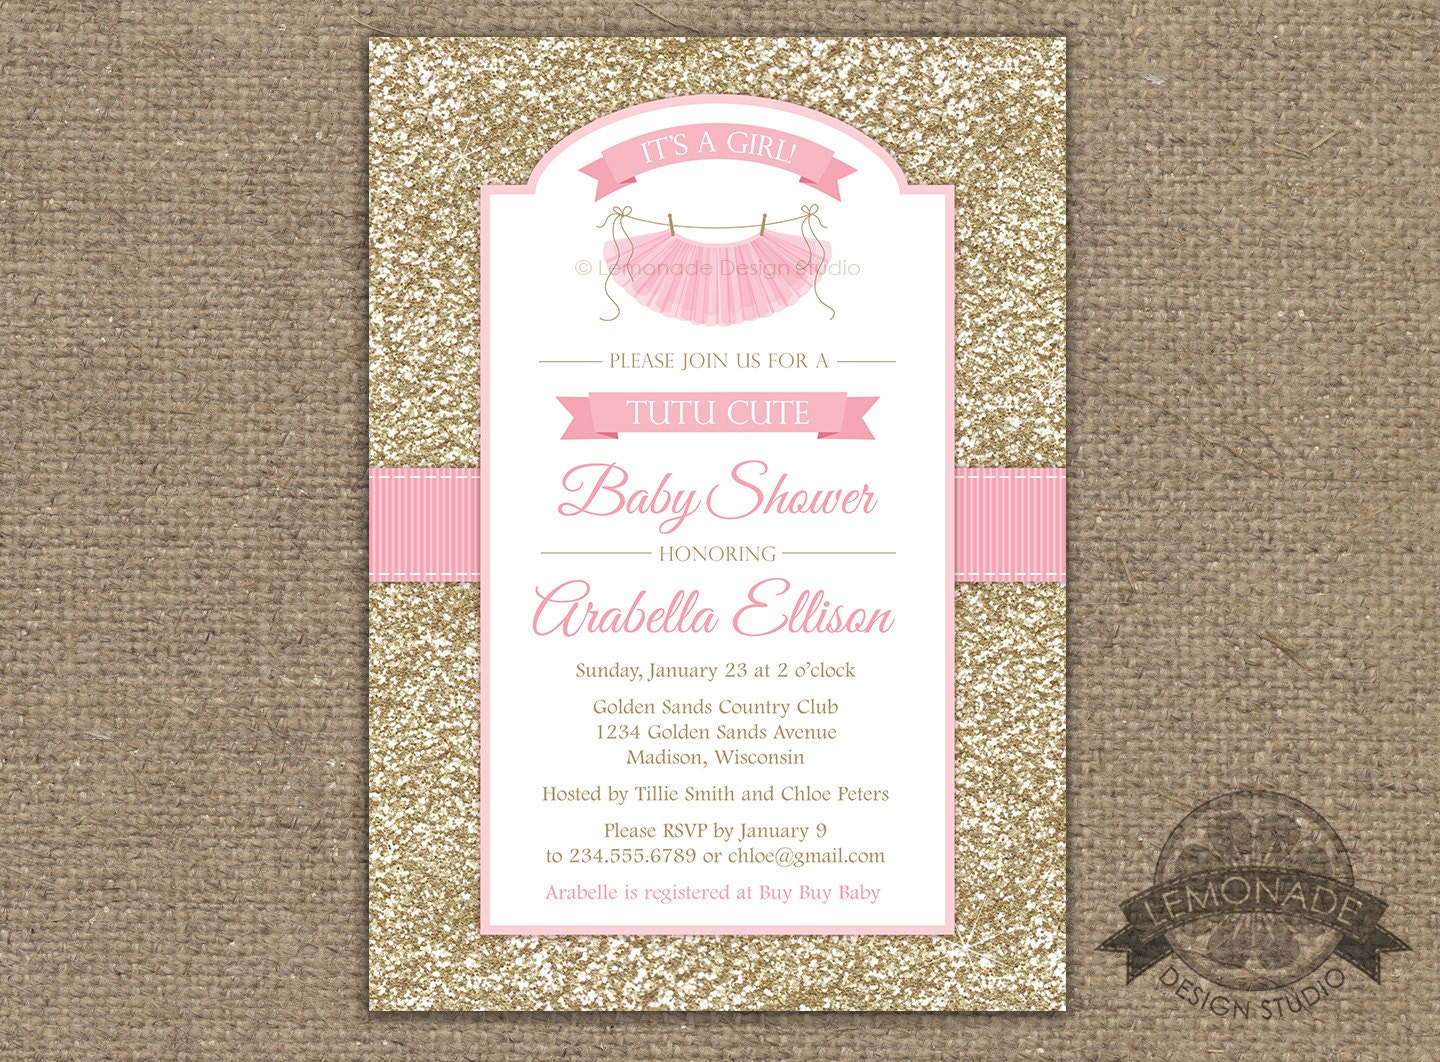 153d33cfc1d0 Tutu Cute Baby Shower Invitation Gold Pink Baby Shower